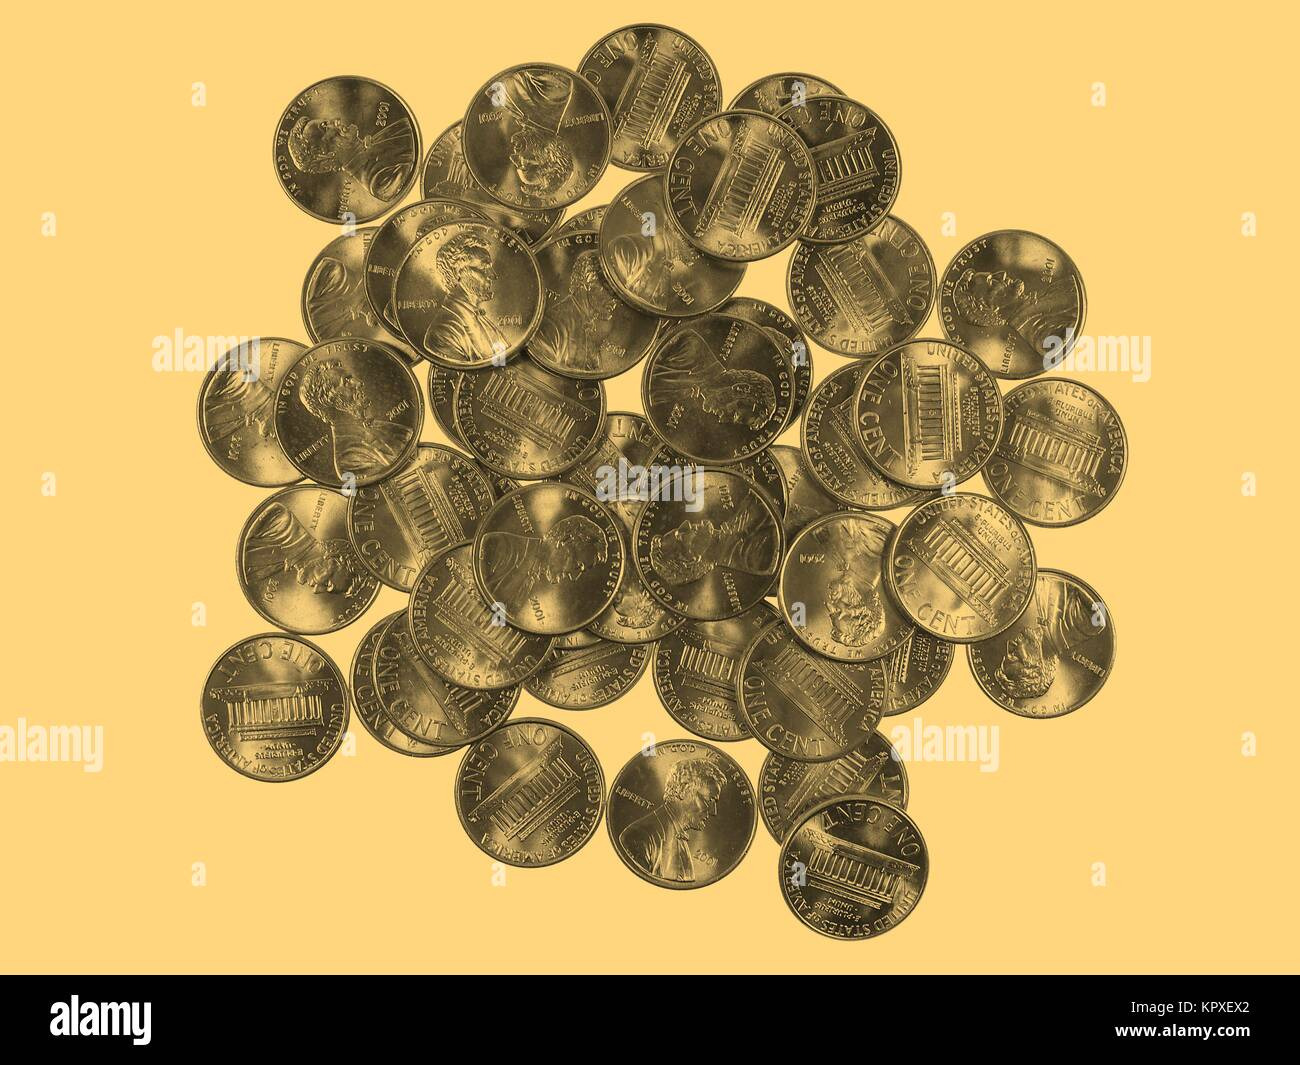 Dollar coins 1 cent wheat penny cent - vintage Stock Photo